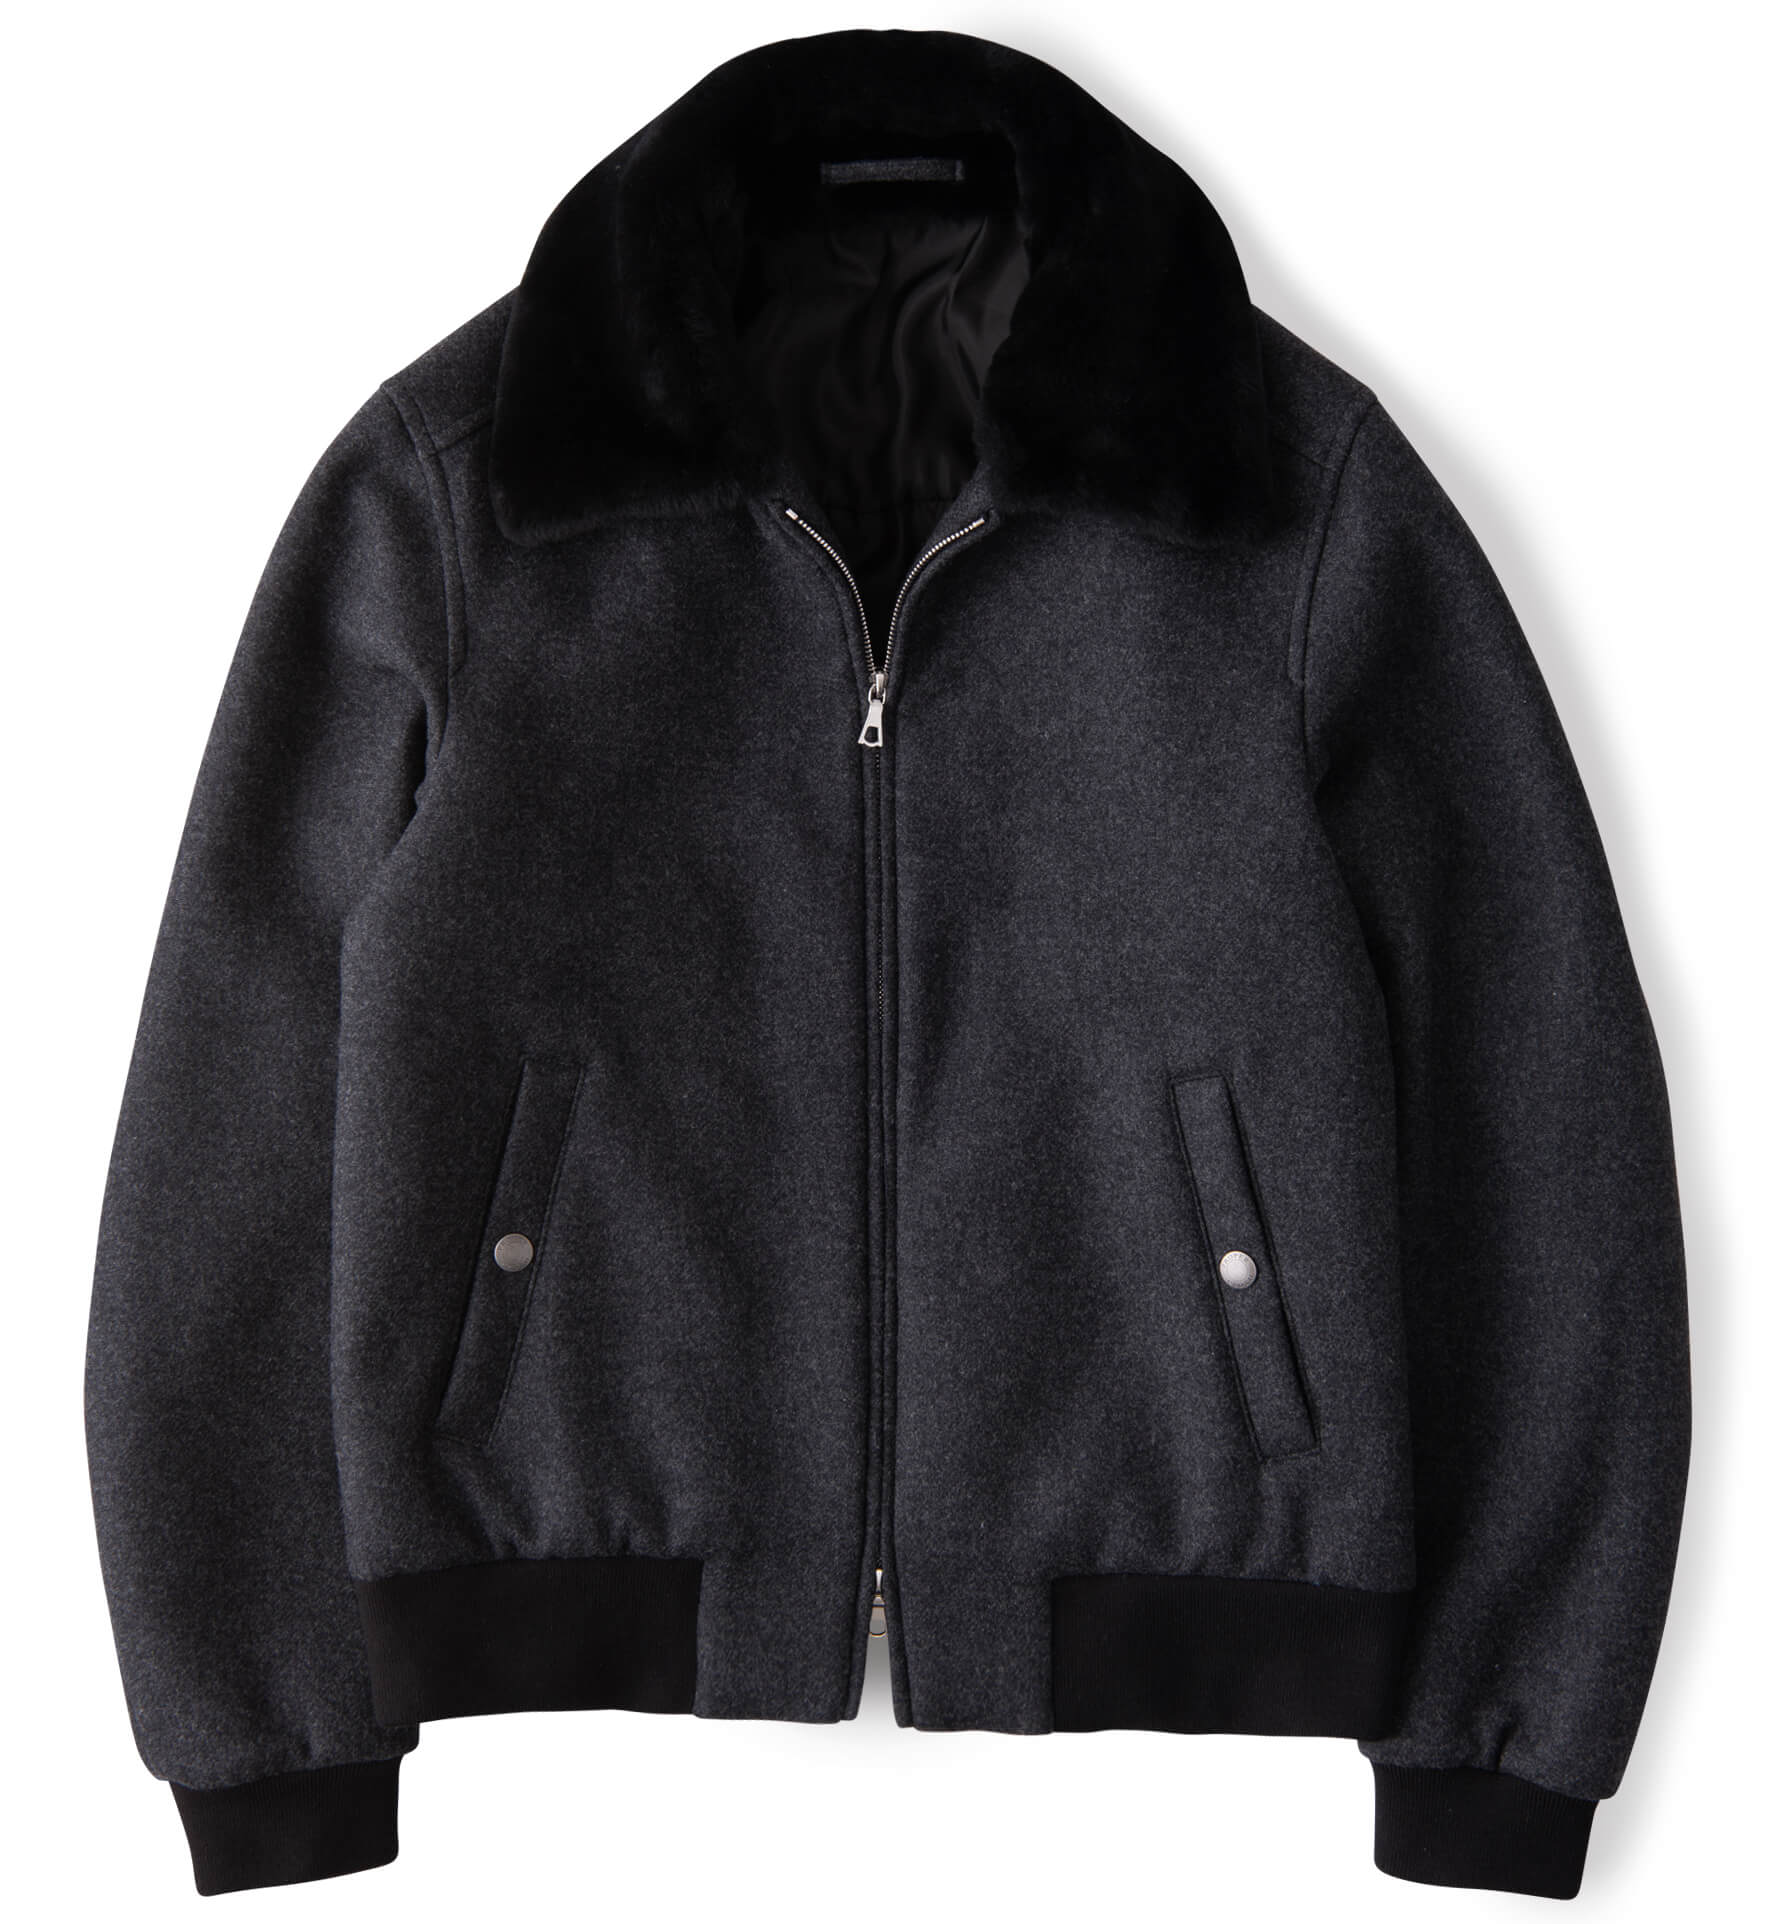 Zoom Image of Biella Grey Wool Shearling Collar Flight Jacket